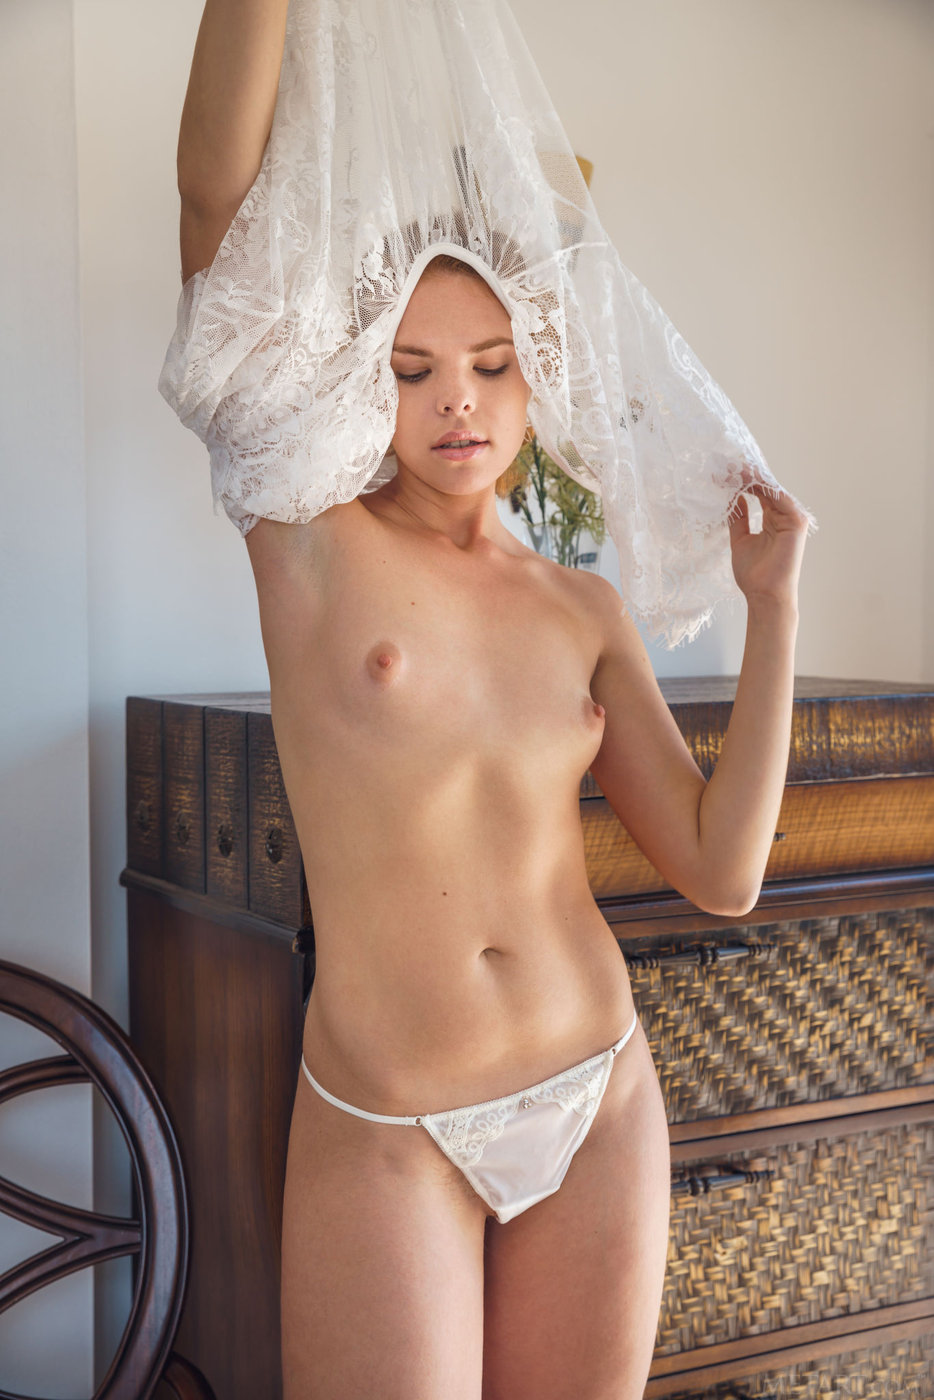 Trimmed pussy in panties